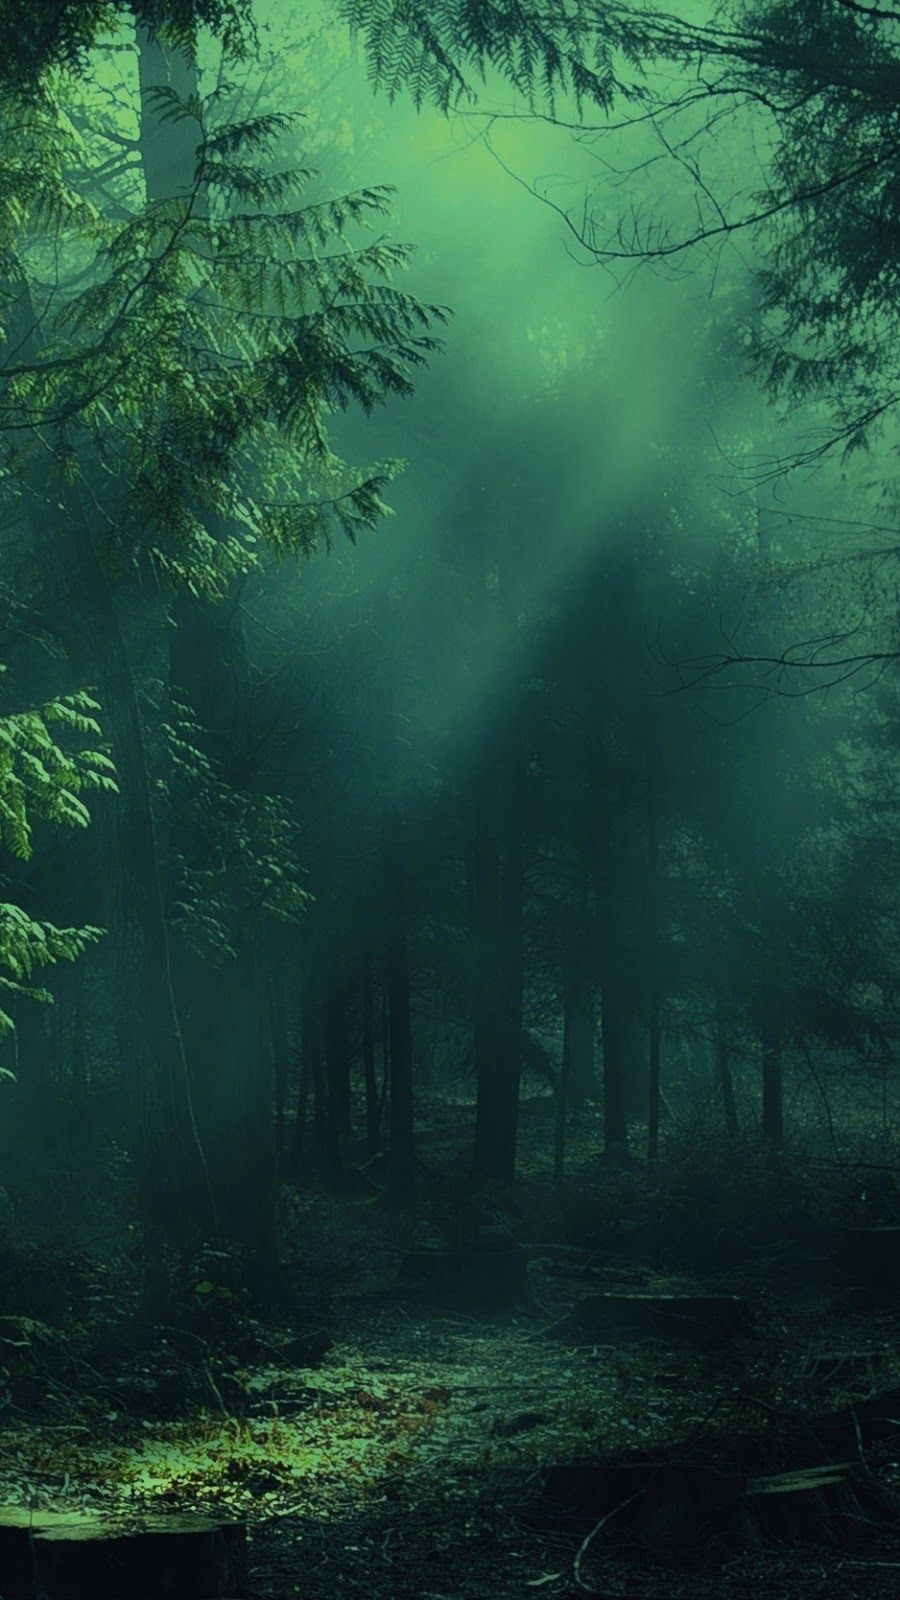 Fog Forest Wallpaper Forest Wallpaper Hd Nature Wallpapers Nature Wallpaper